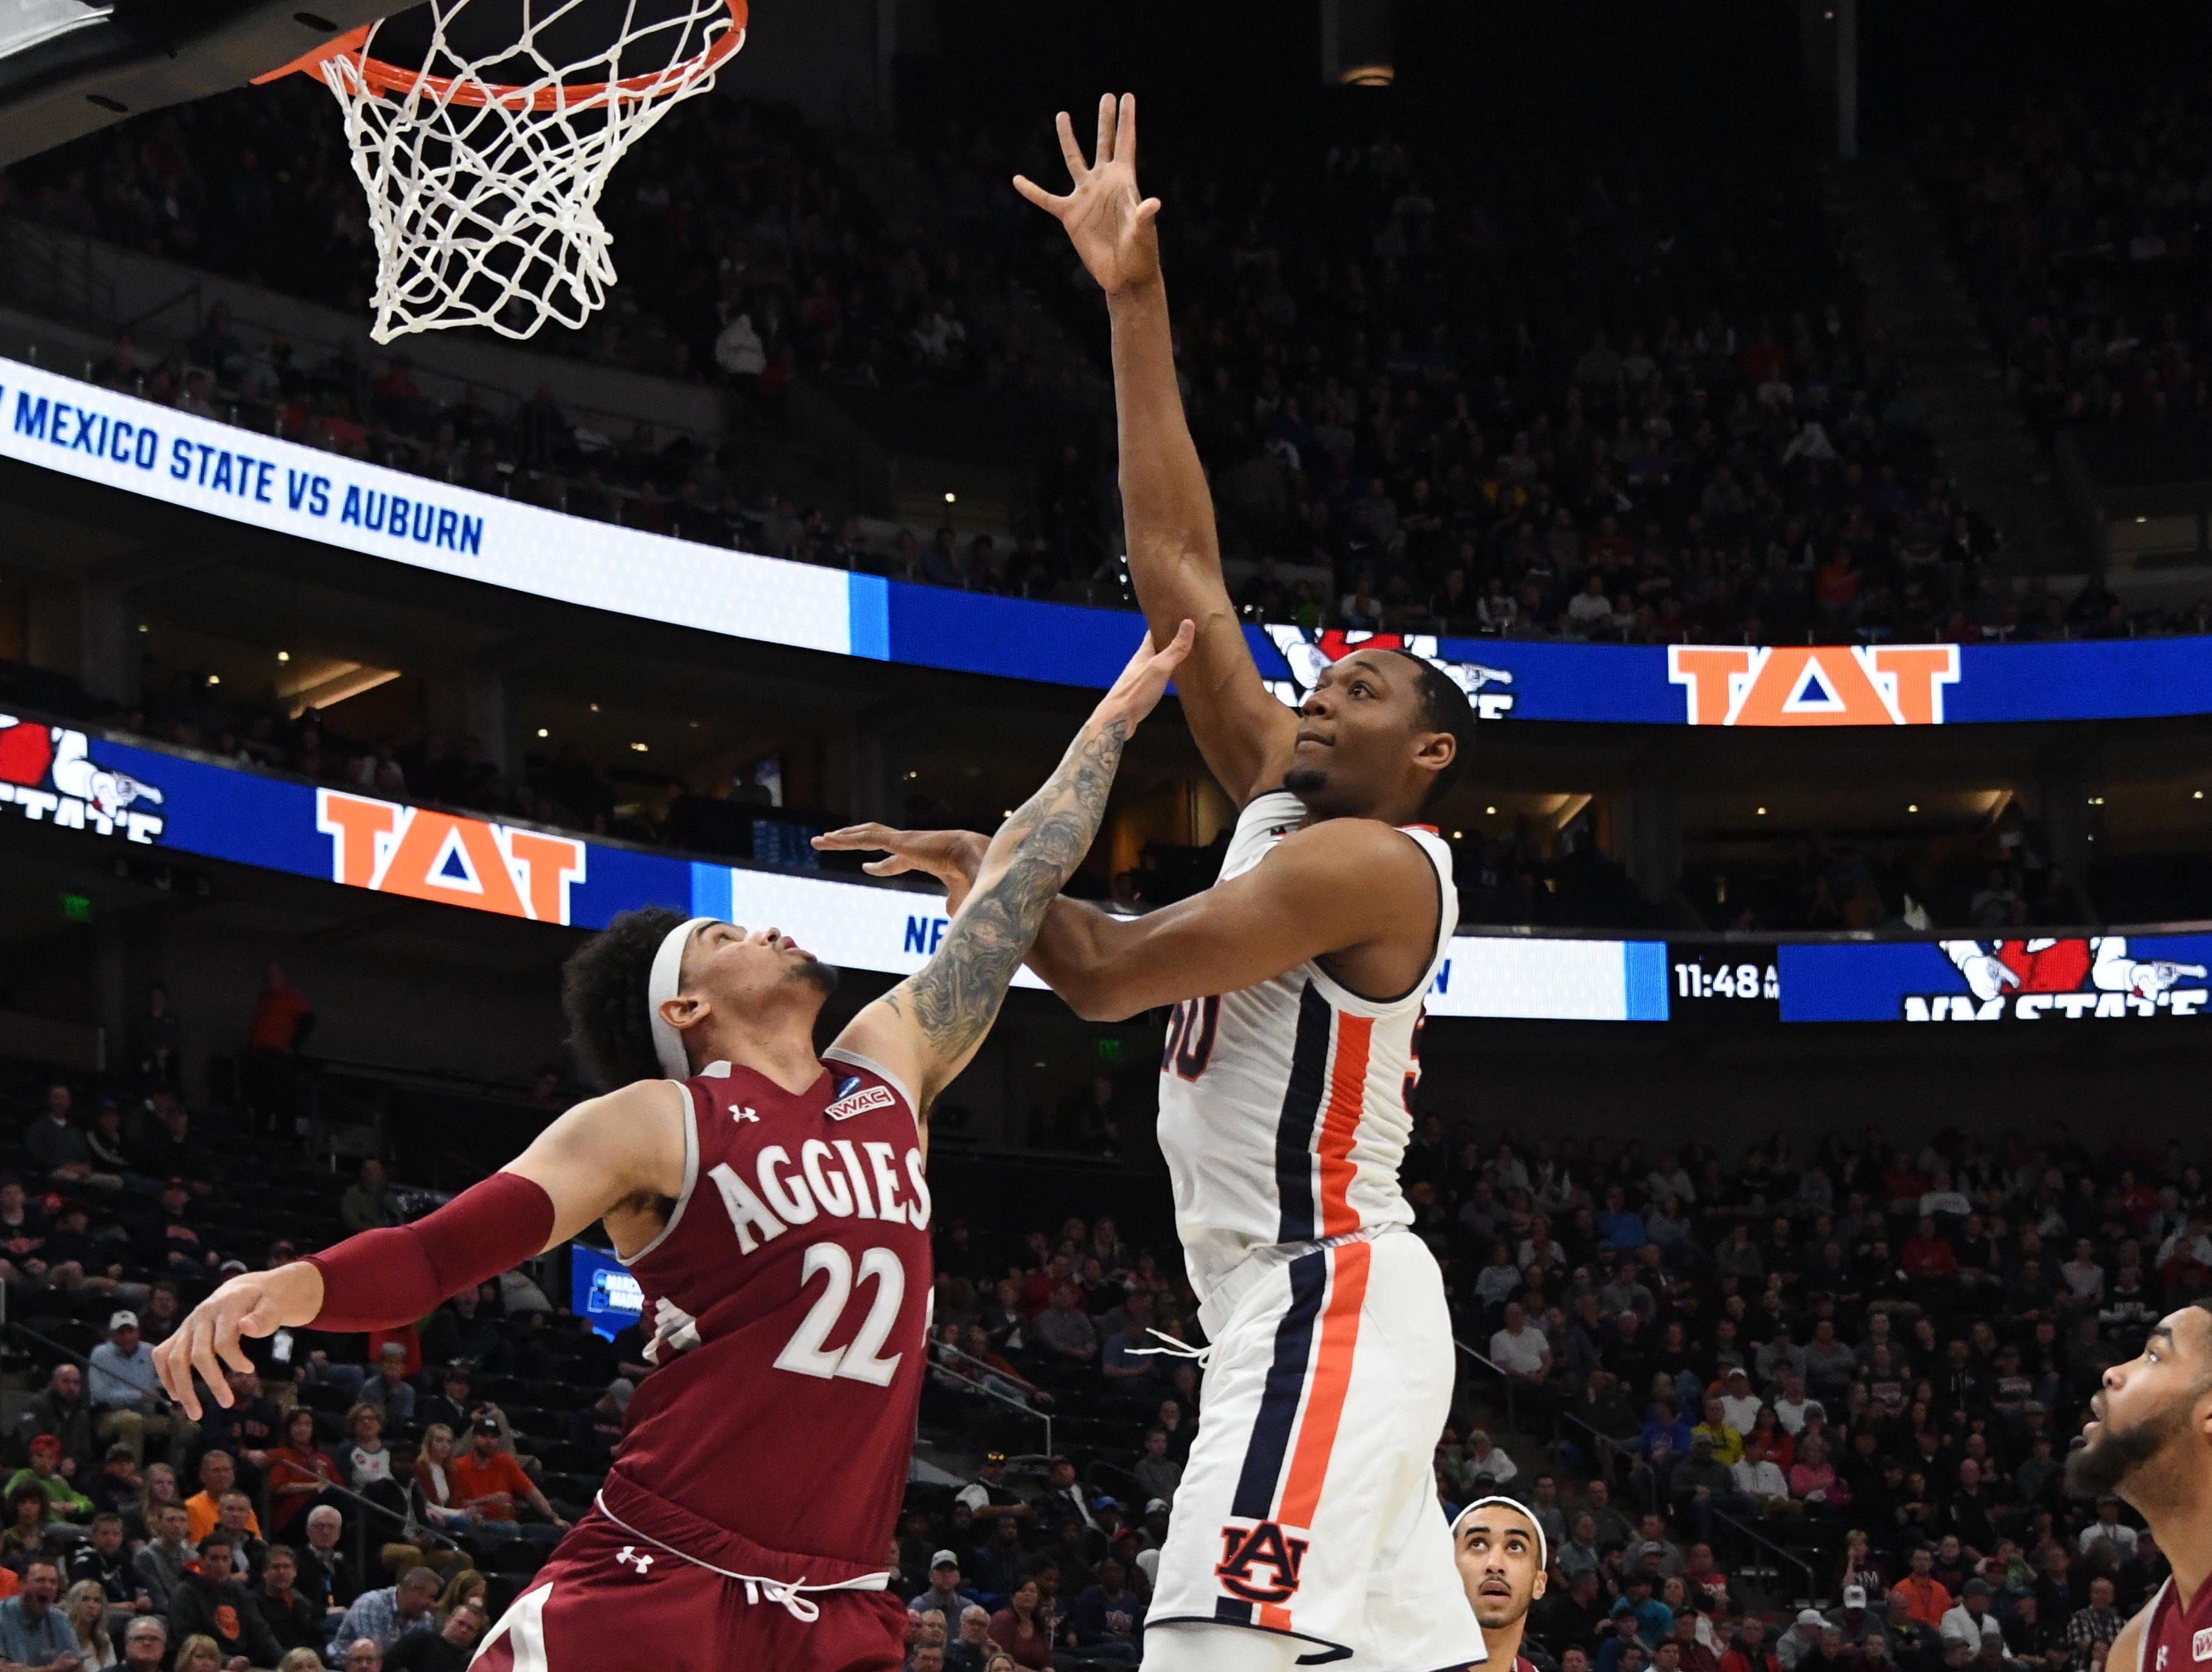 Mar 21, 2019; Salt Lake City, UT, USA; Auburn Tigers center Austin Wiley (50) shoots as New Mexico State Aggies forward Eli Chuha (22) defends during the first half in the first round of the 2019 NCAA Tournament at Vivint Smart Home Arena. Mandatory Credit: Kirby Lee-USA TODAY Sports